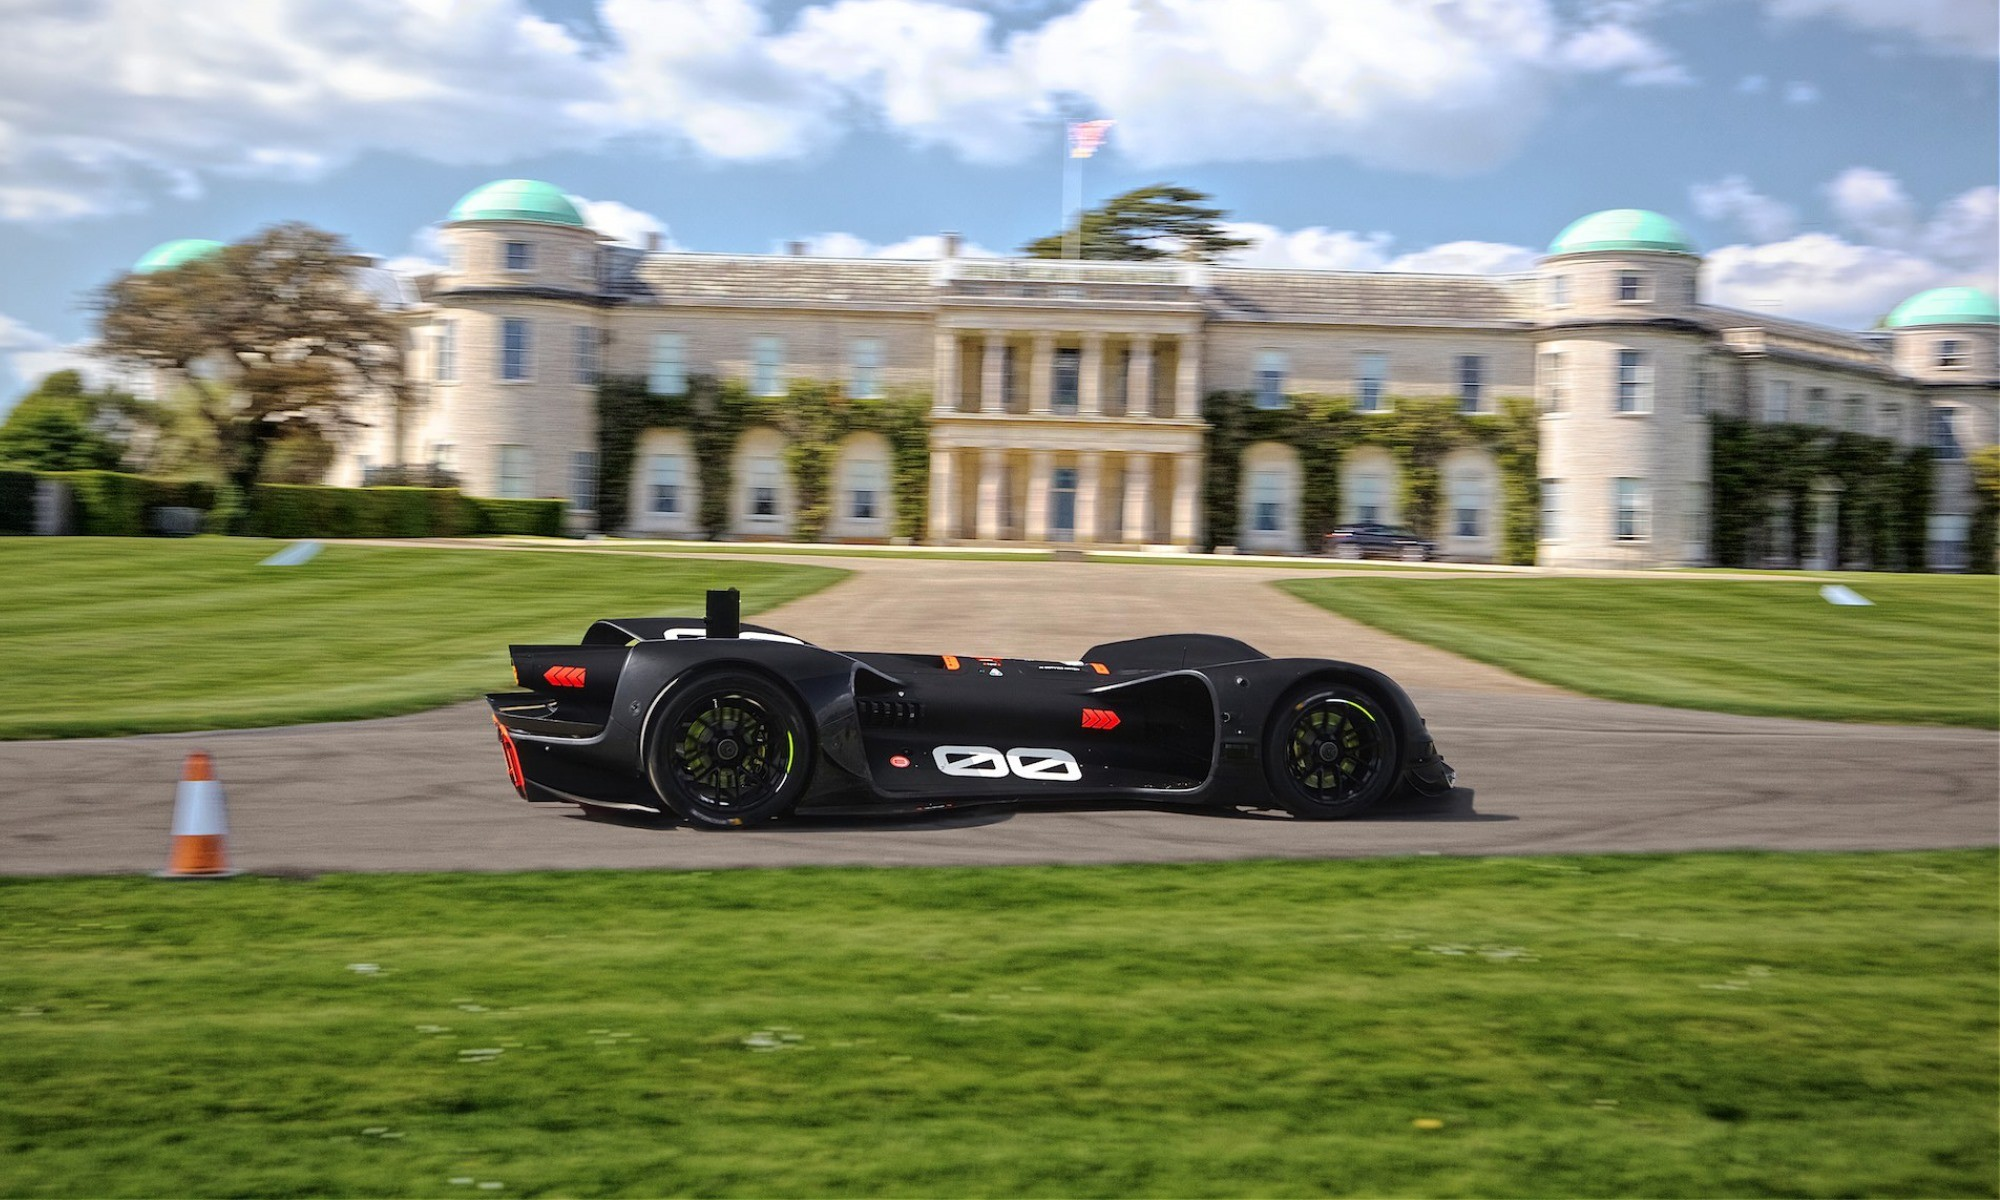 Robocar driving by Goodwood House during testing